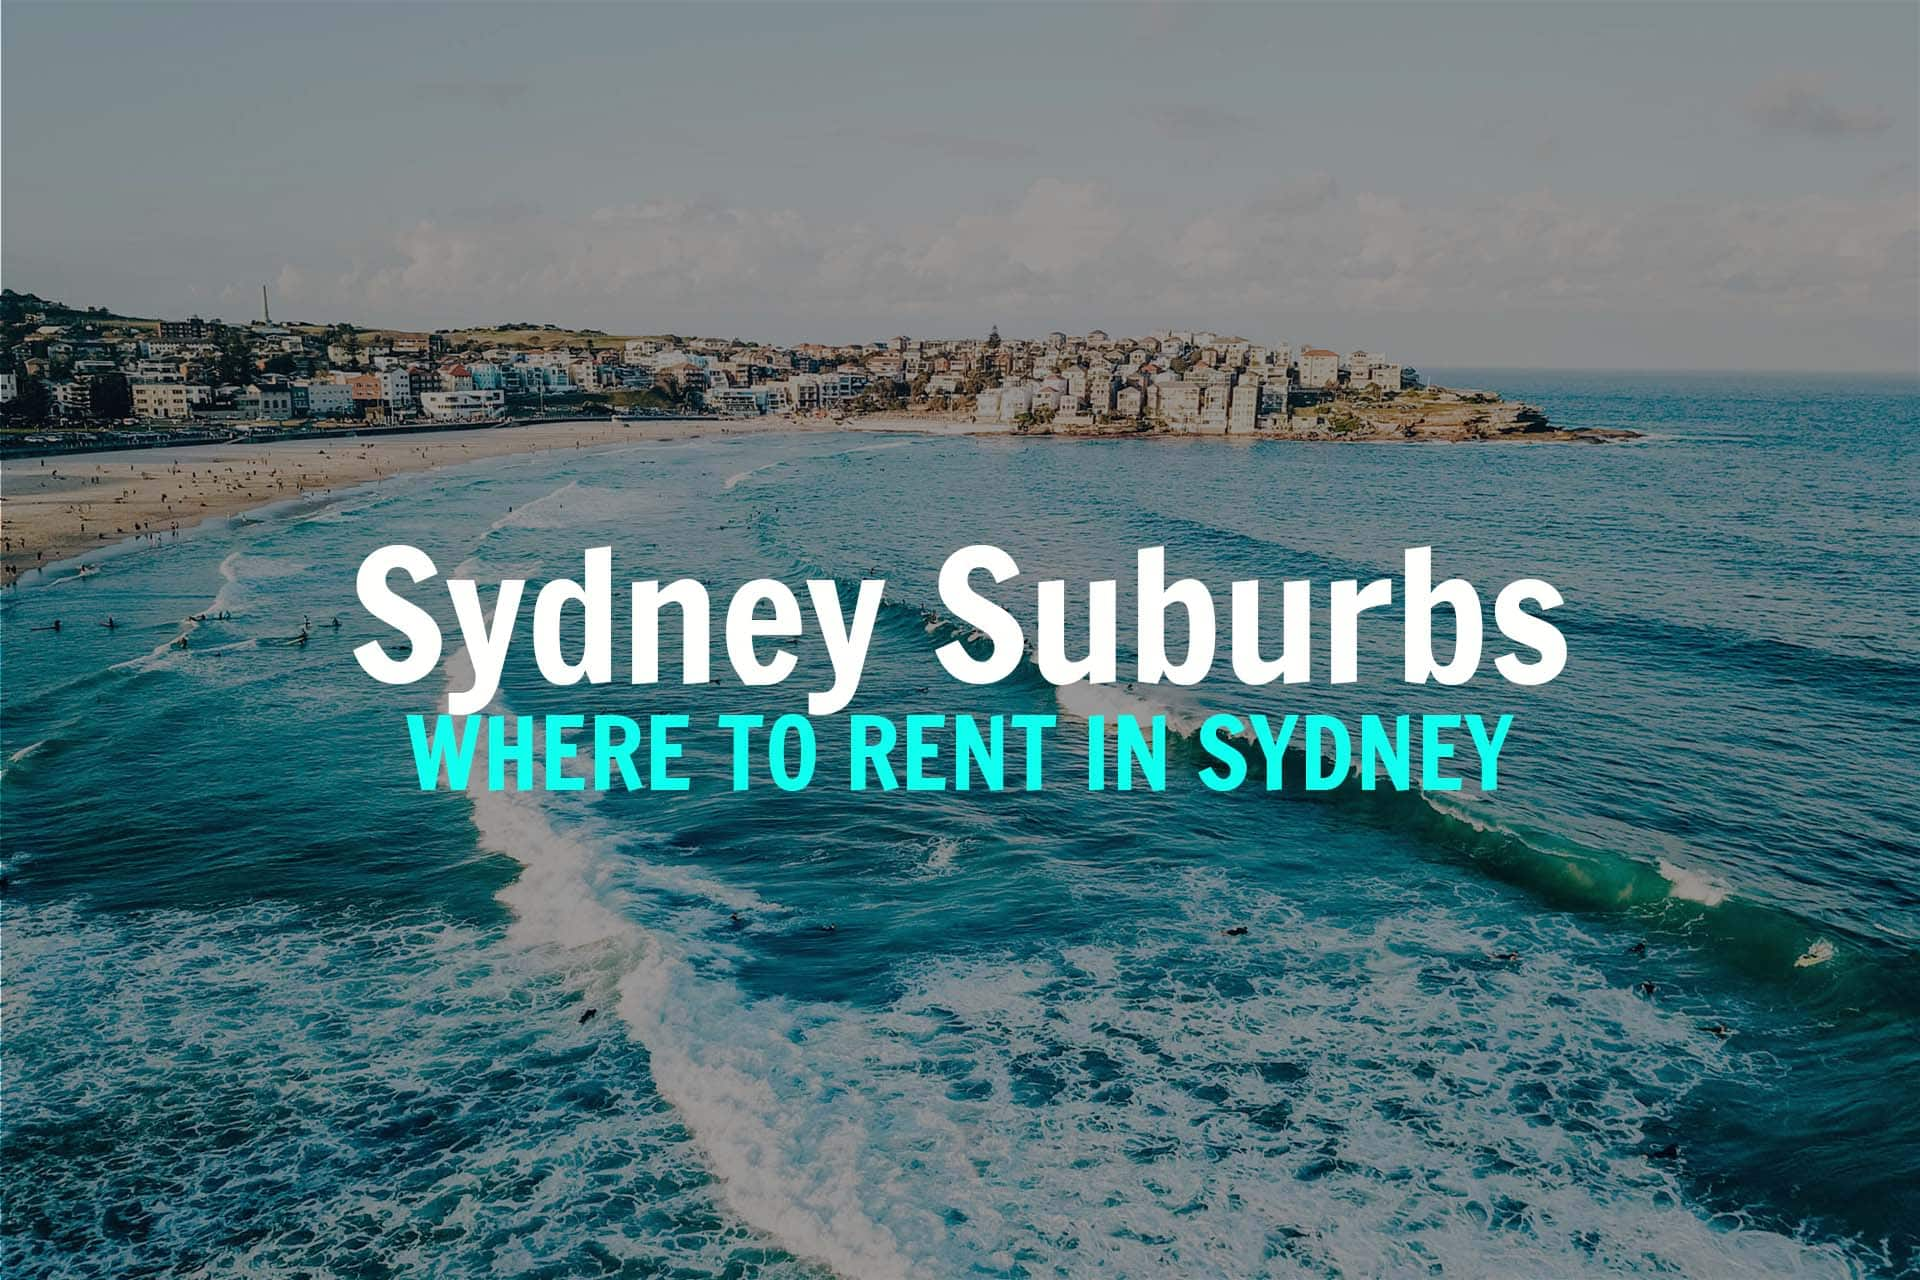 WHERE-TO-RENT-IN-SYDNEY-1